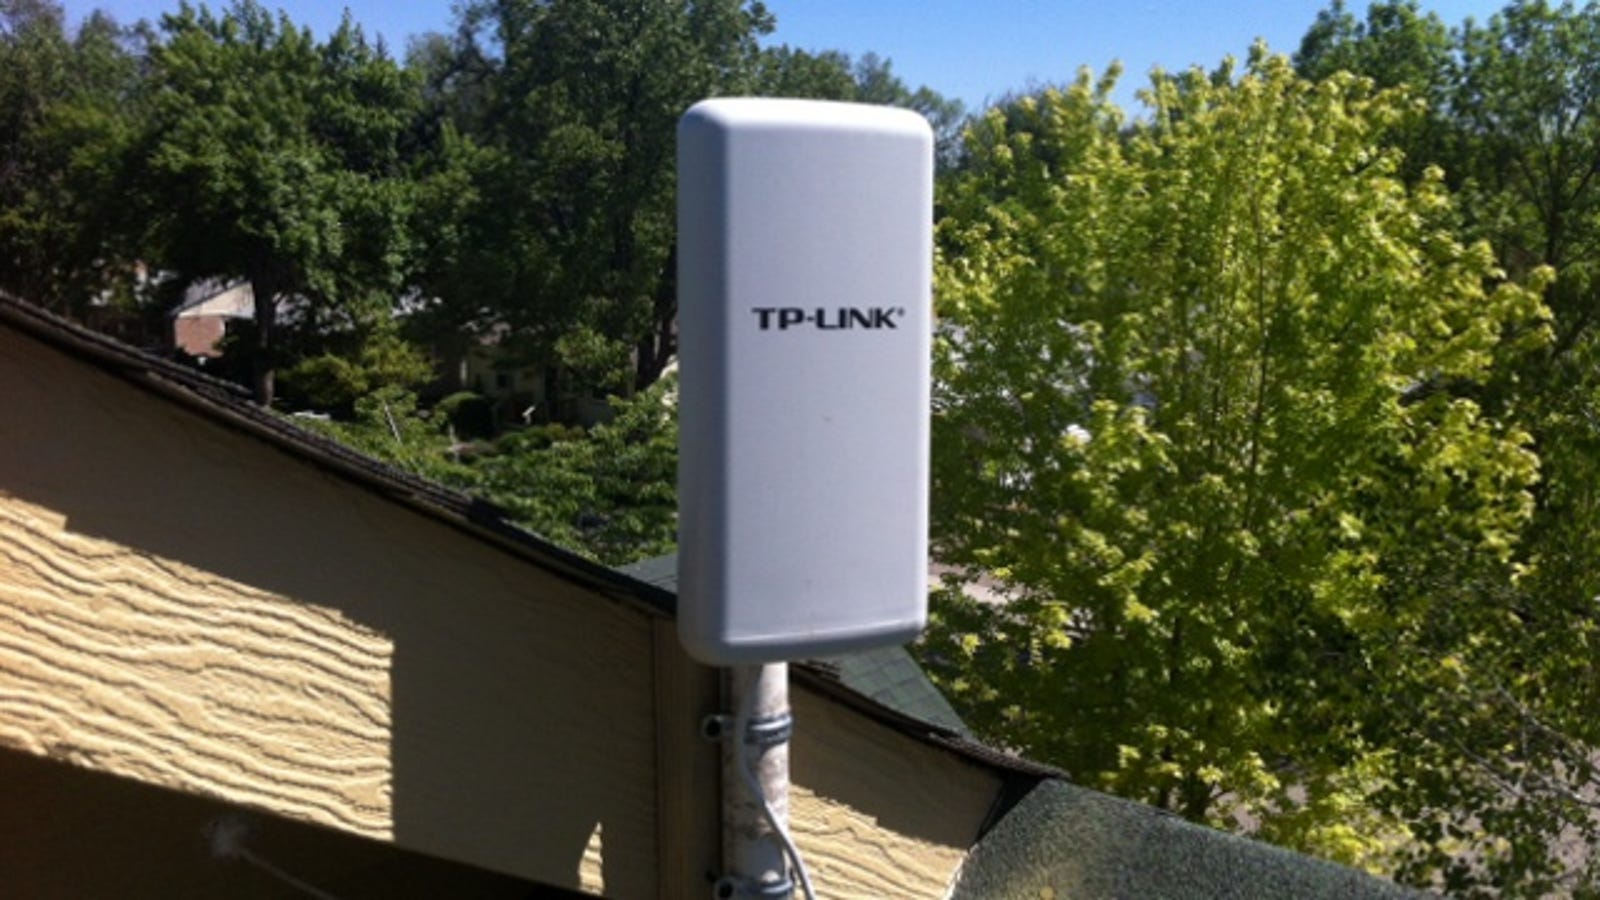 Share Your Internet Connection Using An Outdoor Wireless Access Point Ideas To Hide Fuse Box